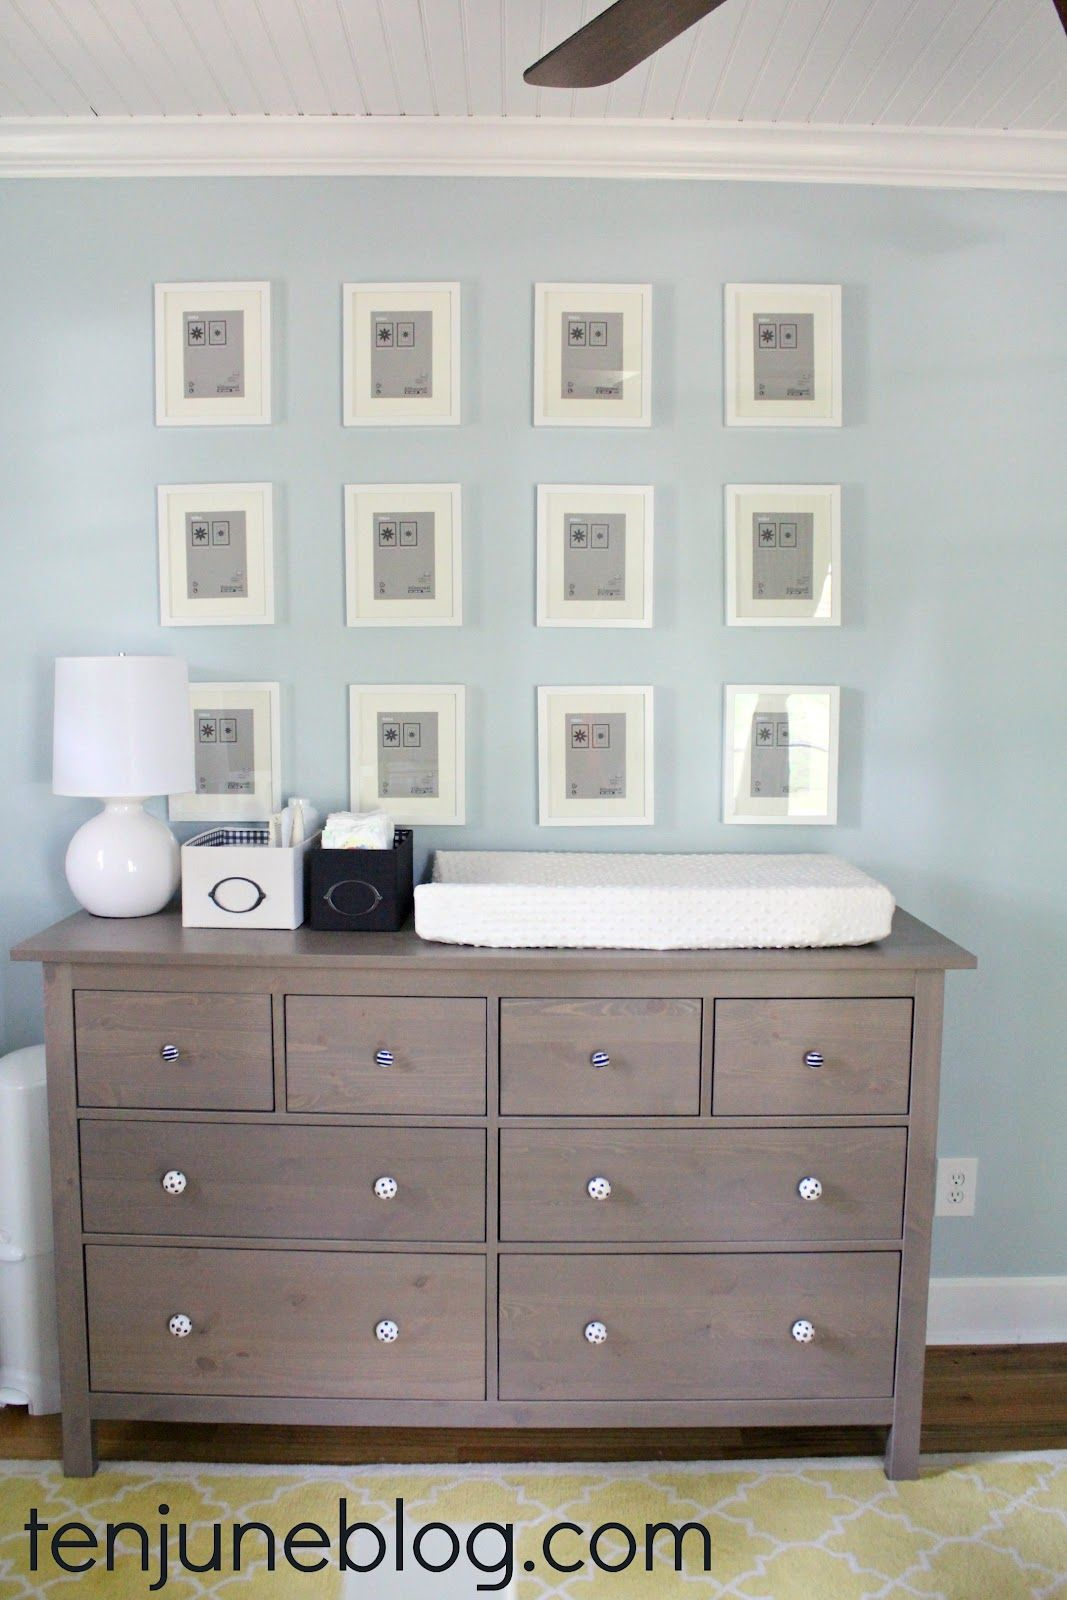 Ikea Hemnes Dresser Low And Deep Enough To Double As A Changing Table With Plenty Of Room For Clothes Ikea Dresser Changing Table Dresser Ikea Hemnes Dresser